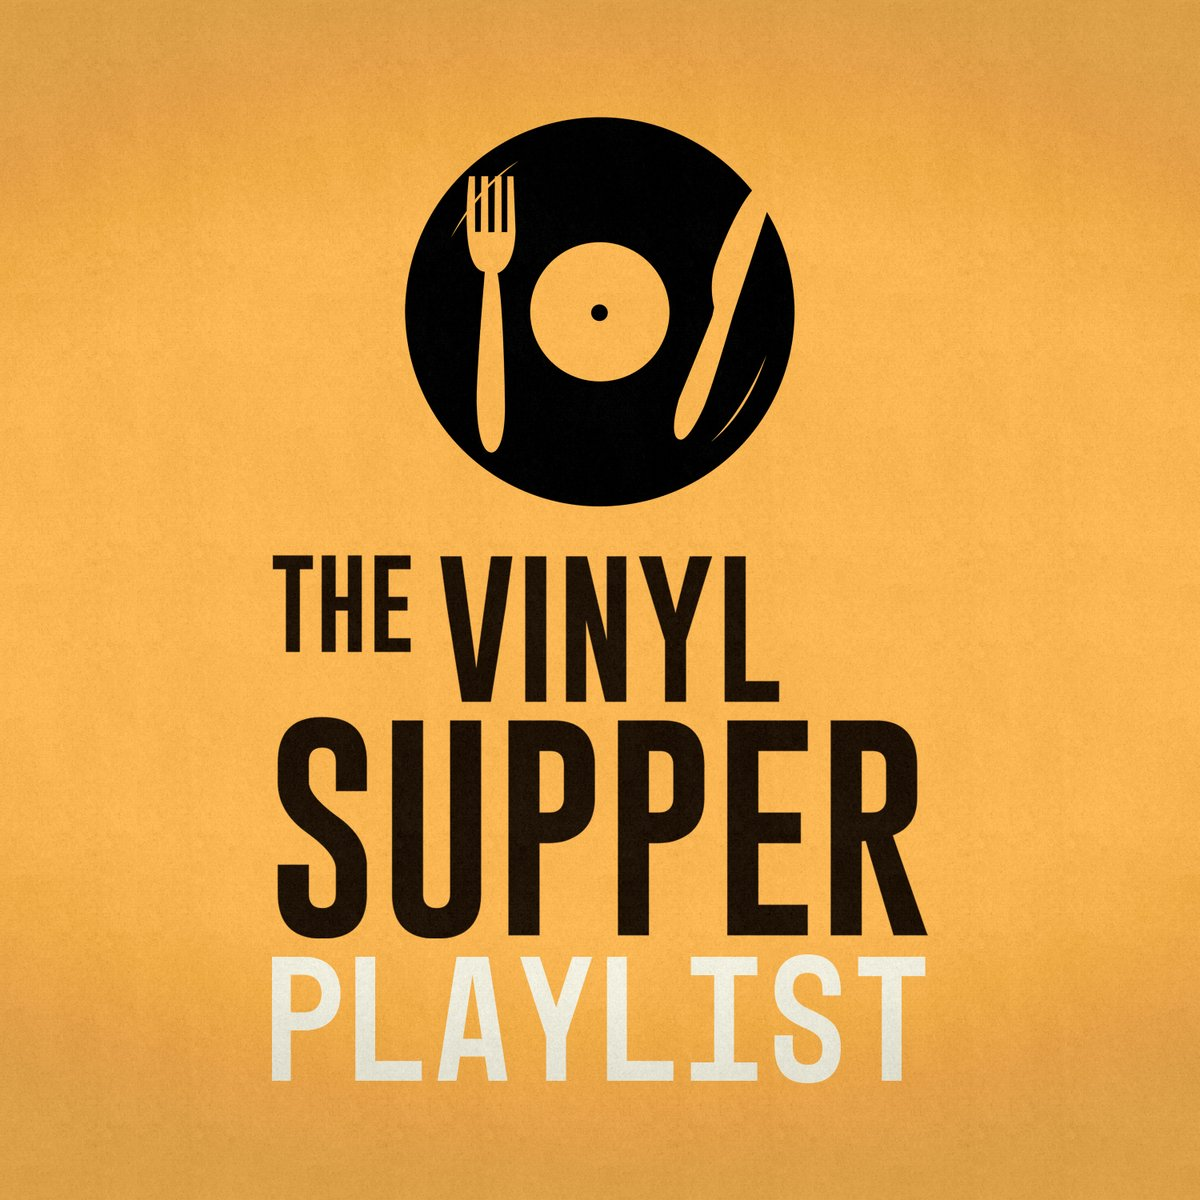 Listen to all the songs that Foy and his guests pick for their last meals during The Vinyl Supper. Updated weekly! xFVHQ https://t.co/Vhzgqjy3pJ https://t.co/RRpcrY3vQQ